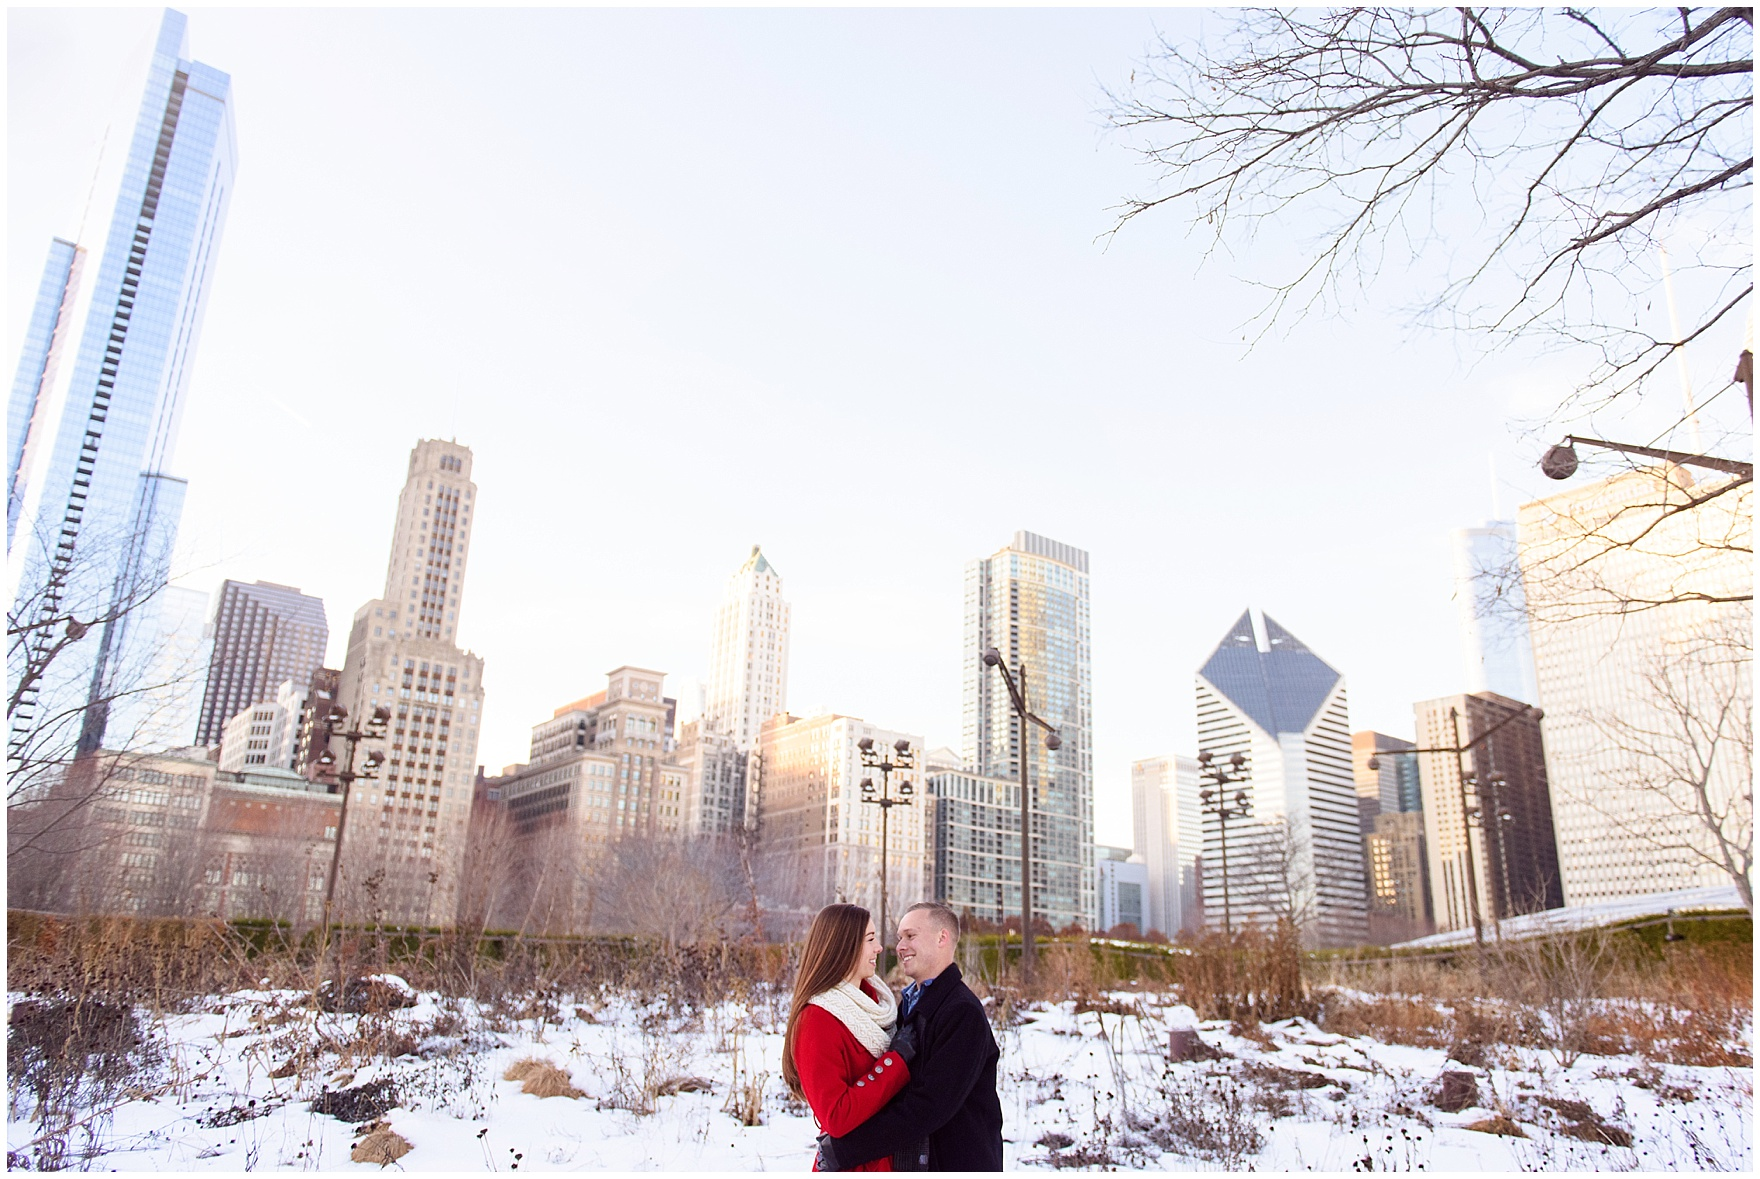 A couple embraces in the snow-covered Lurie Gardens during an Art Institute of Chicago engagement photography session.